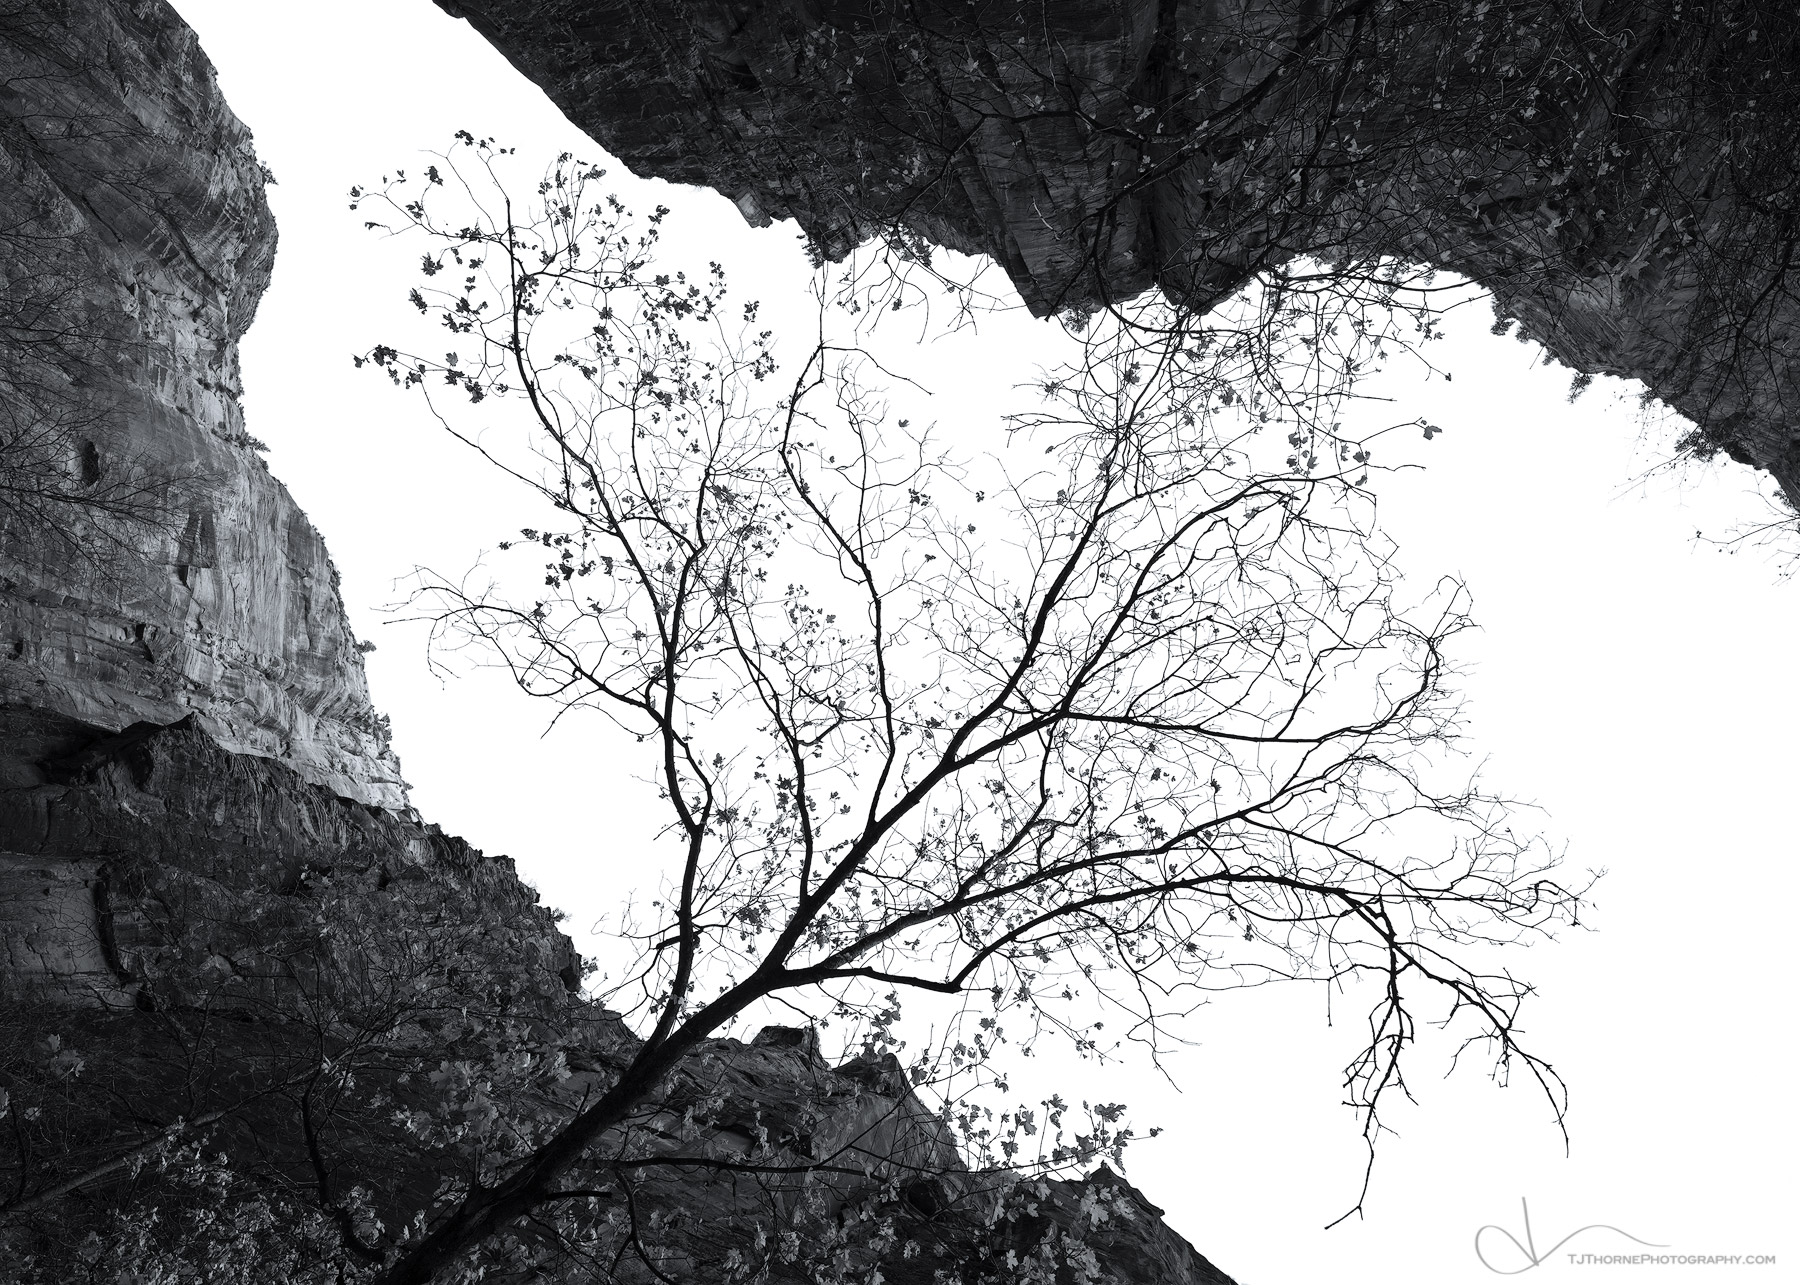 FINE ART LIMITED EDITION OF 100 The last leaves of the season hold onto a tree in Zion National Park well into the winter season...